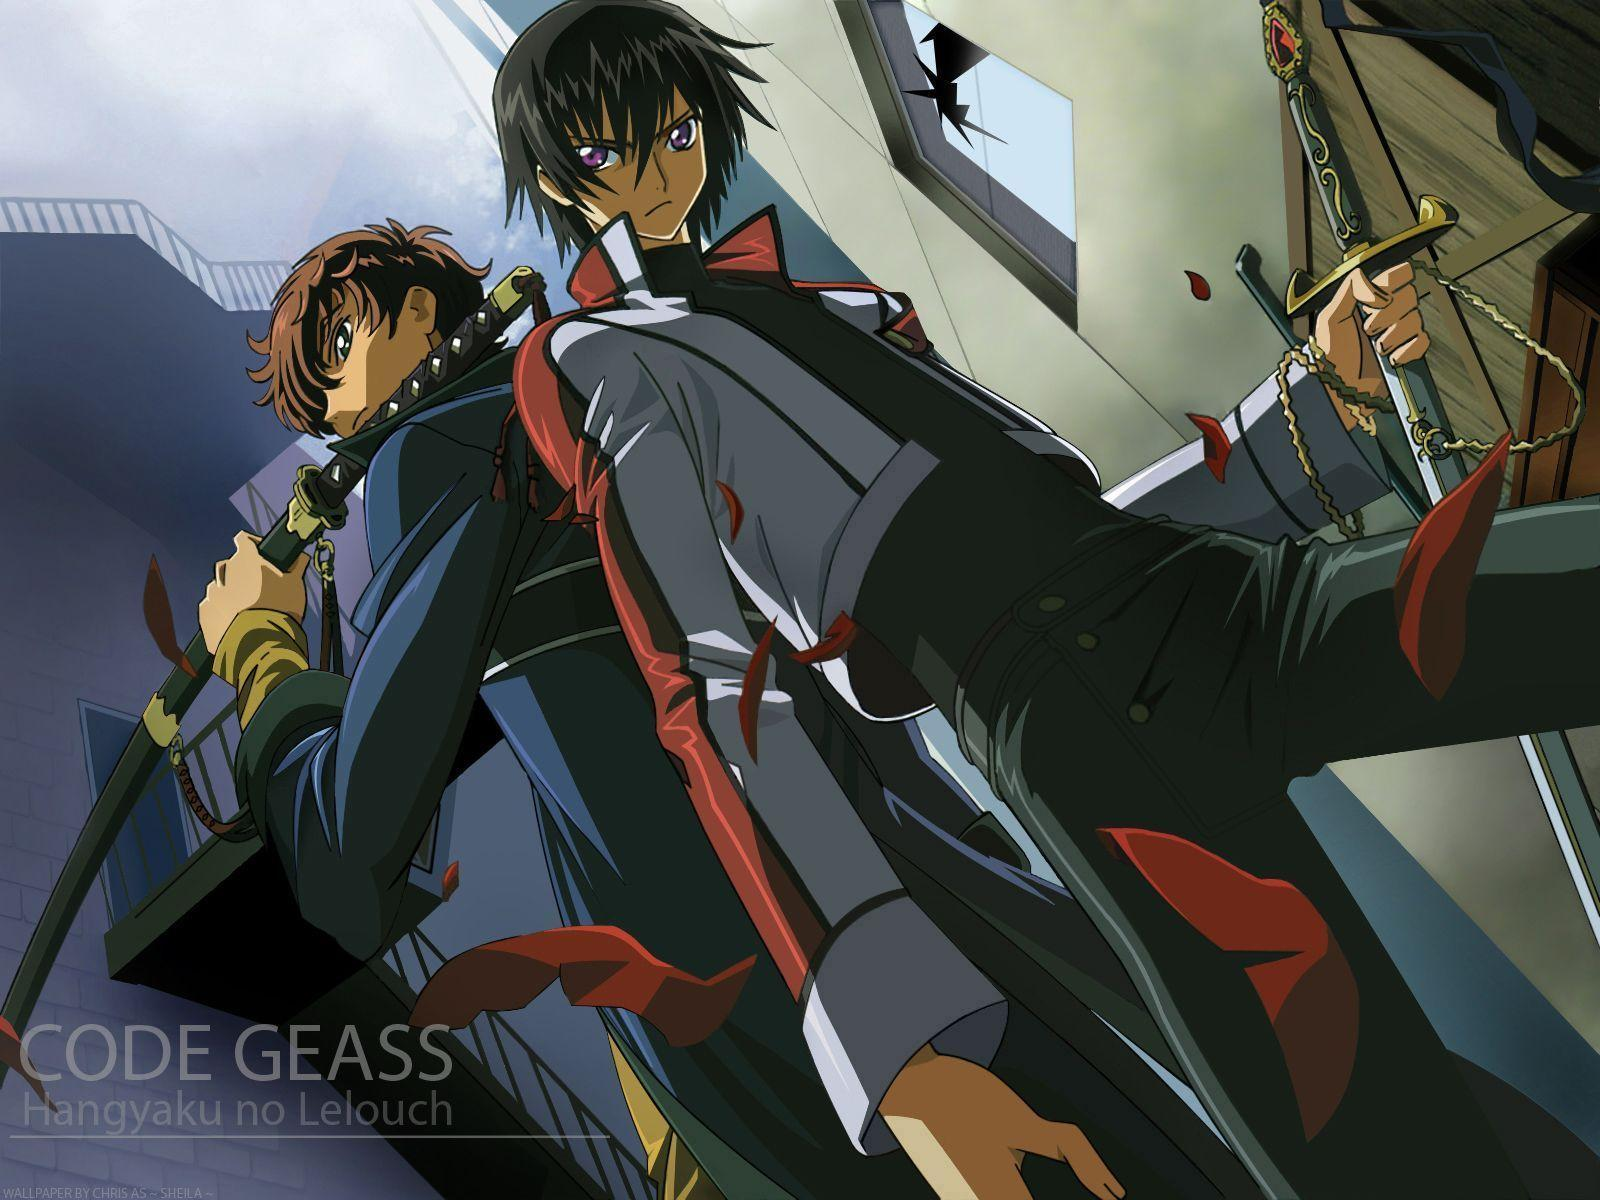 Code Geass Lelouch Wallpapers Image & Pictures